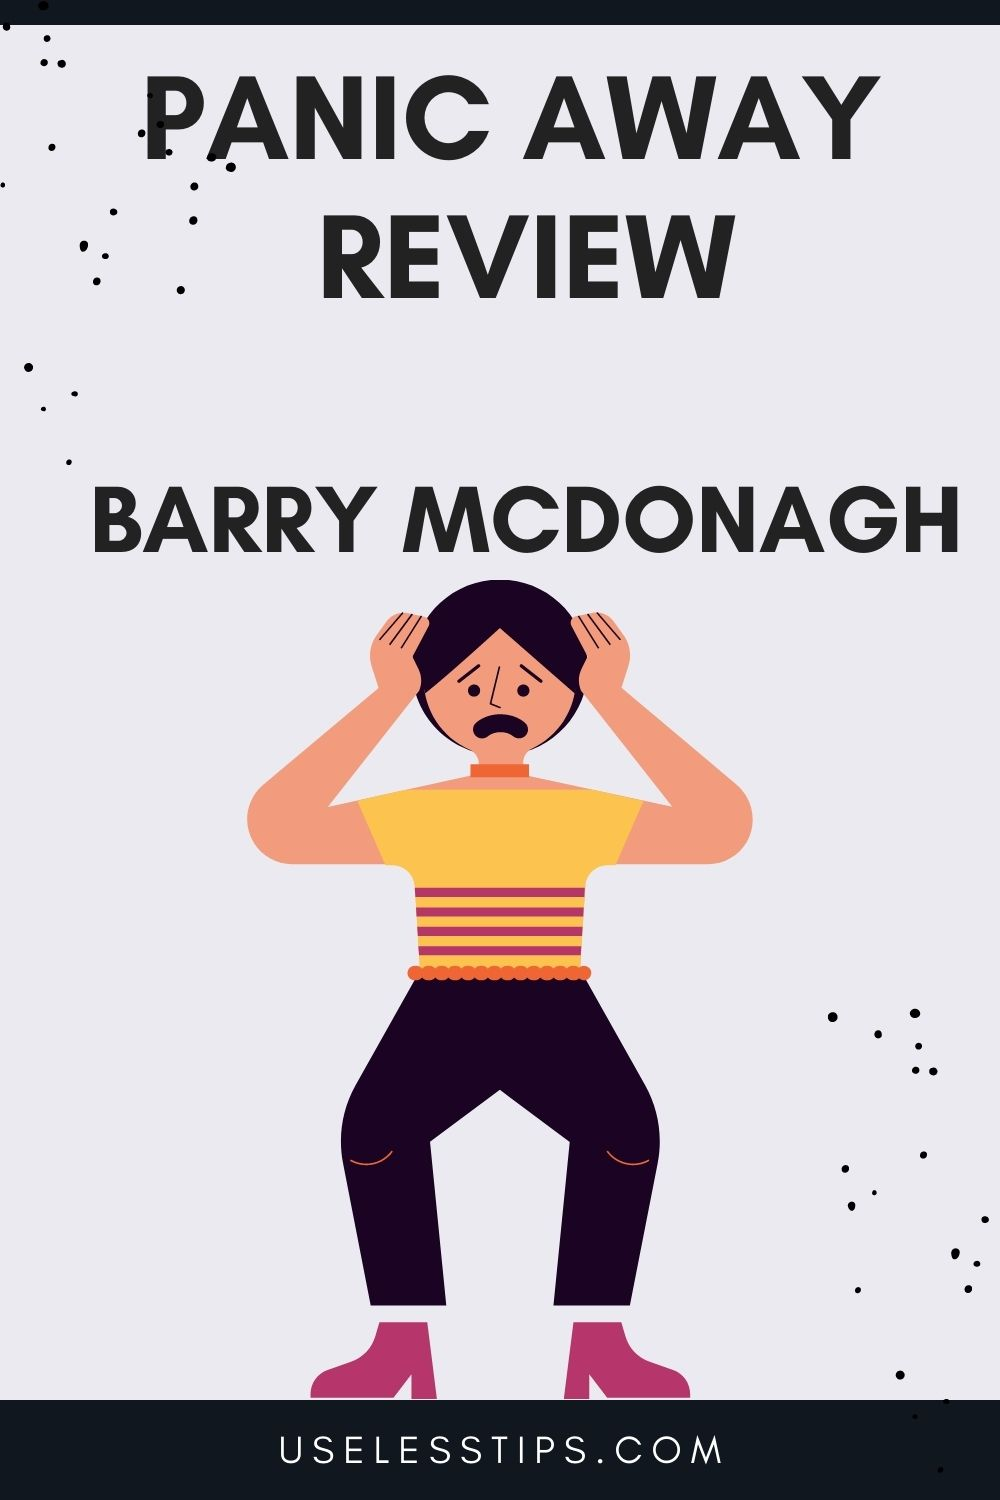 panic away review by Barry McDonagh